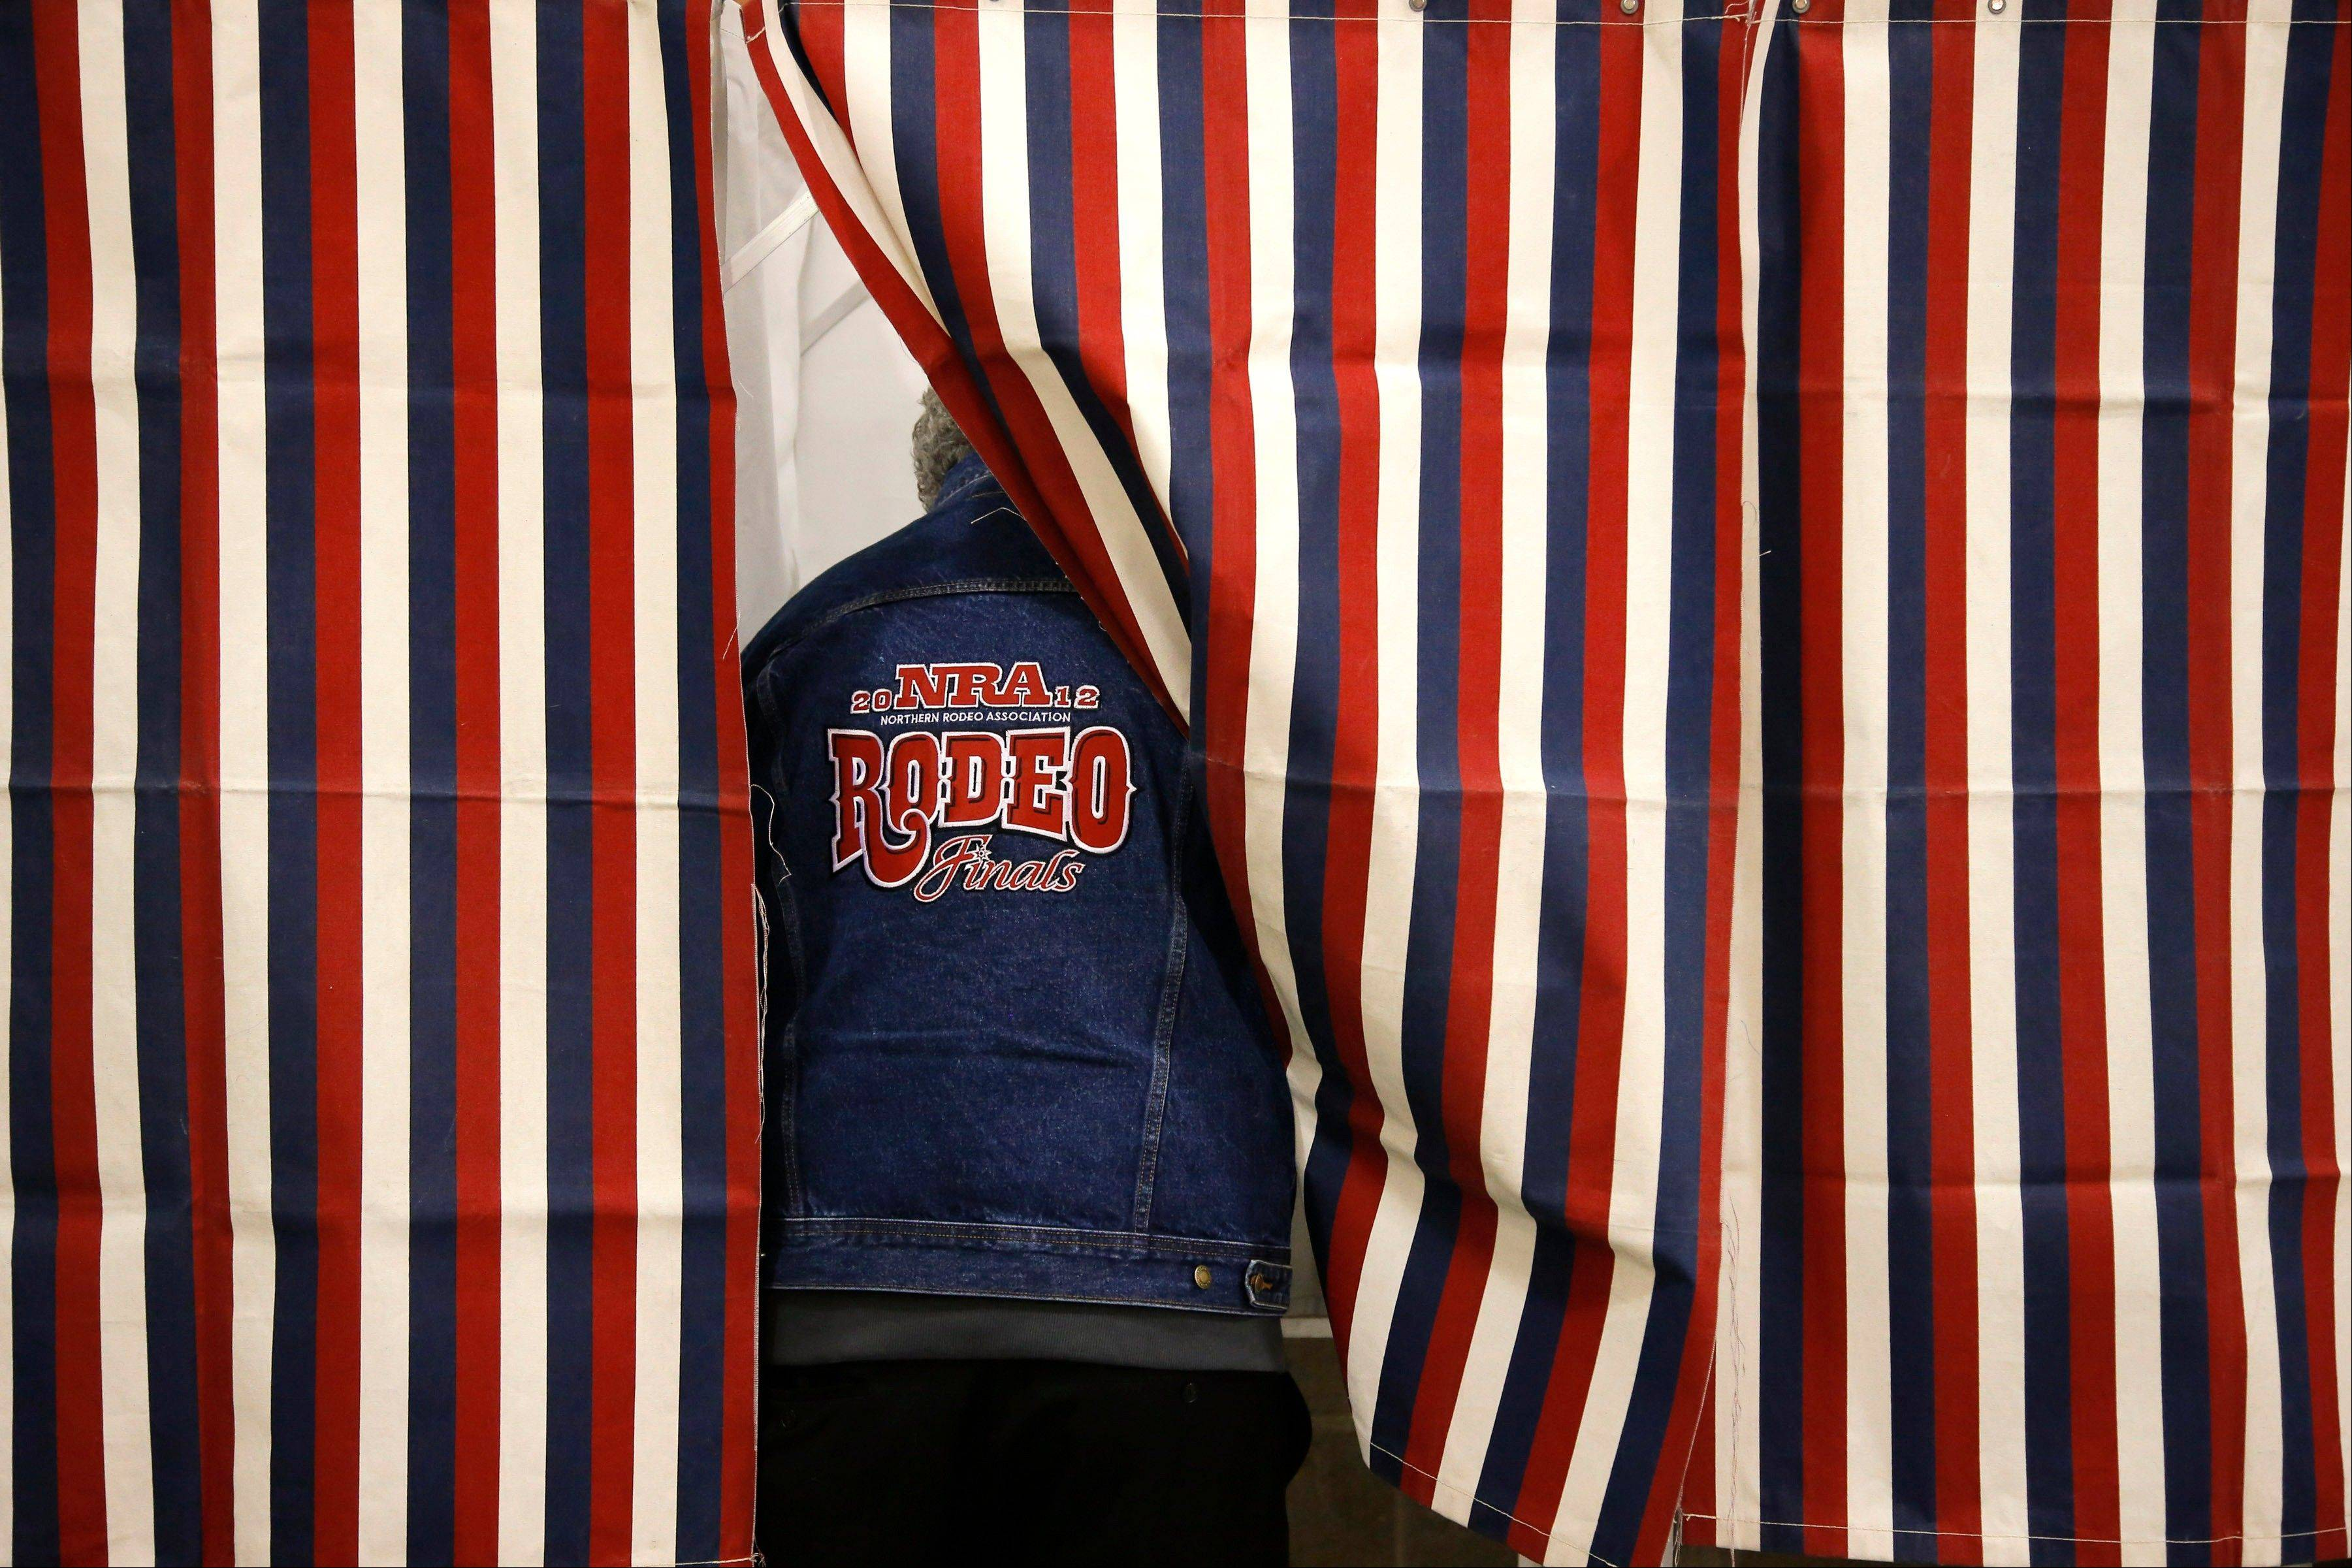 Rocky Erickson casts a ballot at a polling place on Election Day in Billings, Mont., Tuesday, Nov. 6, 2012.